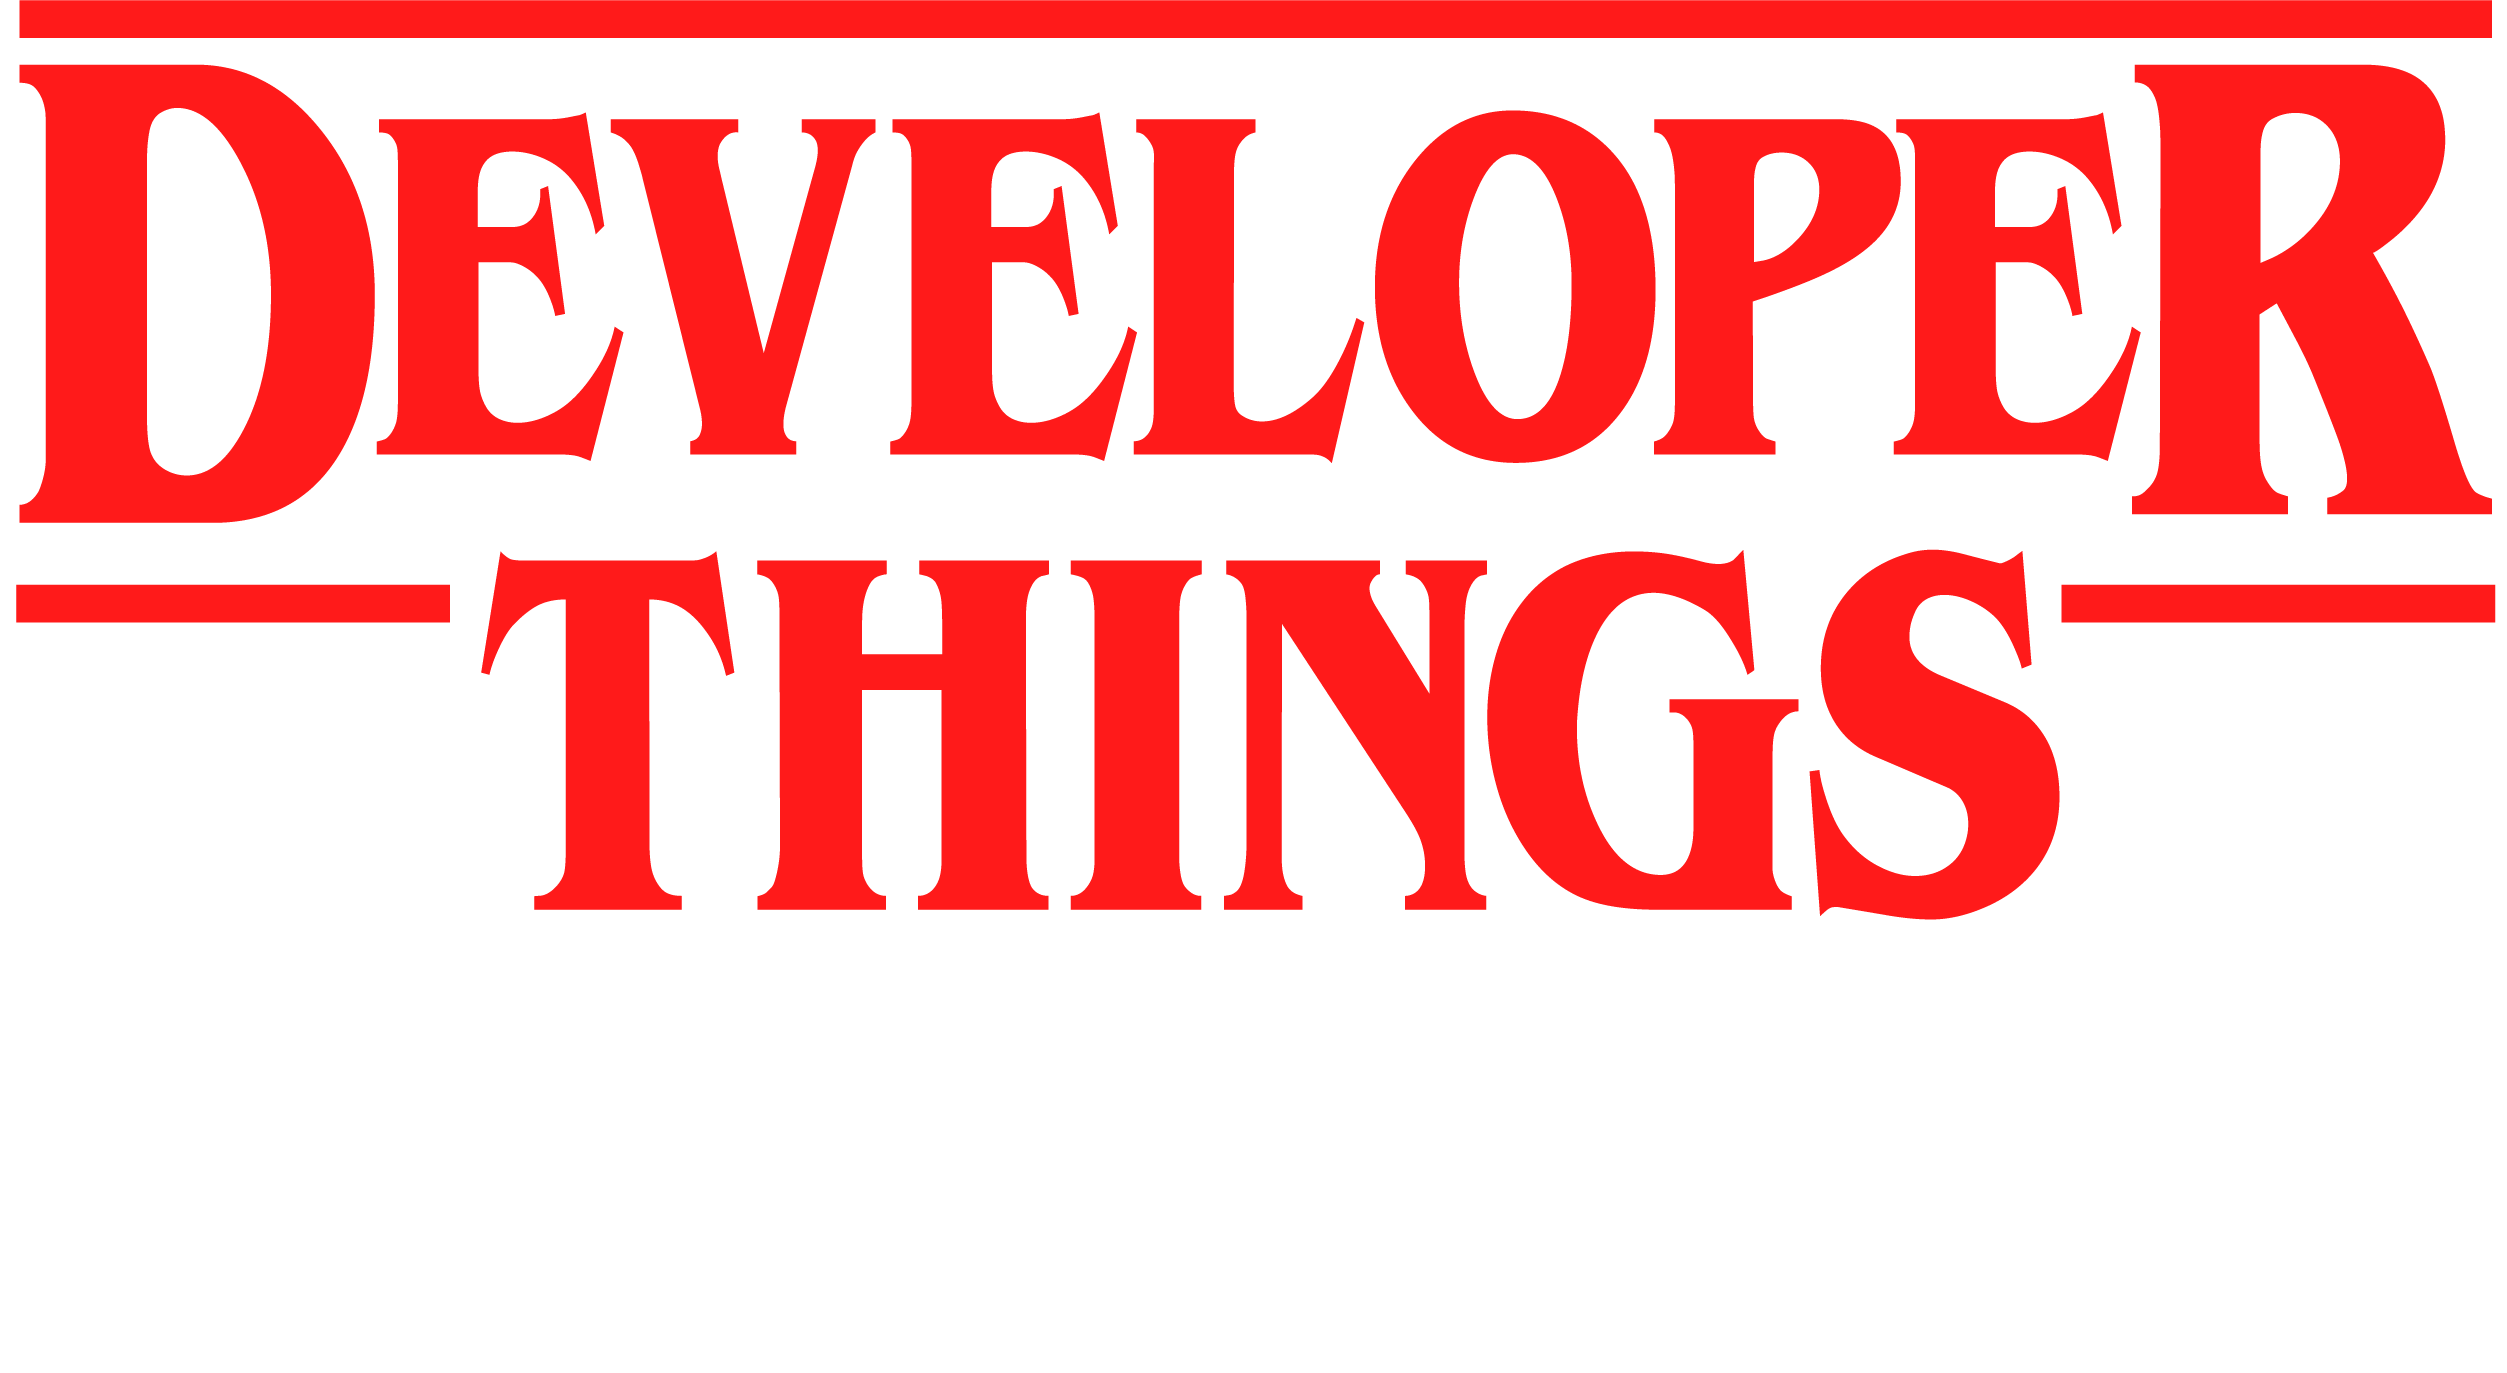 Developer Things Podcast